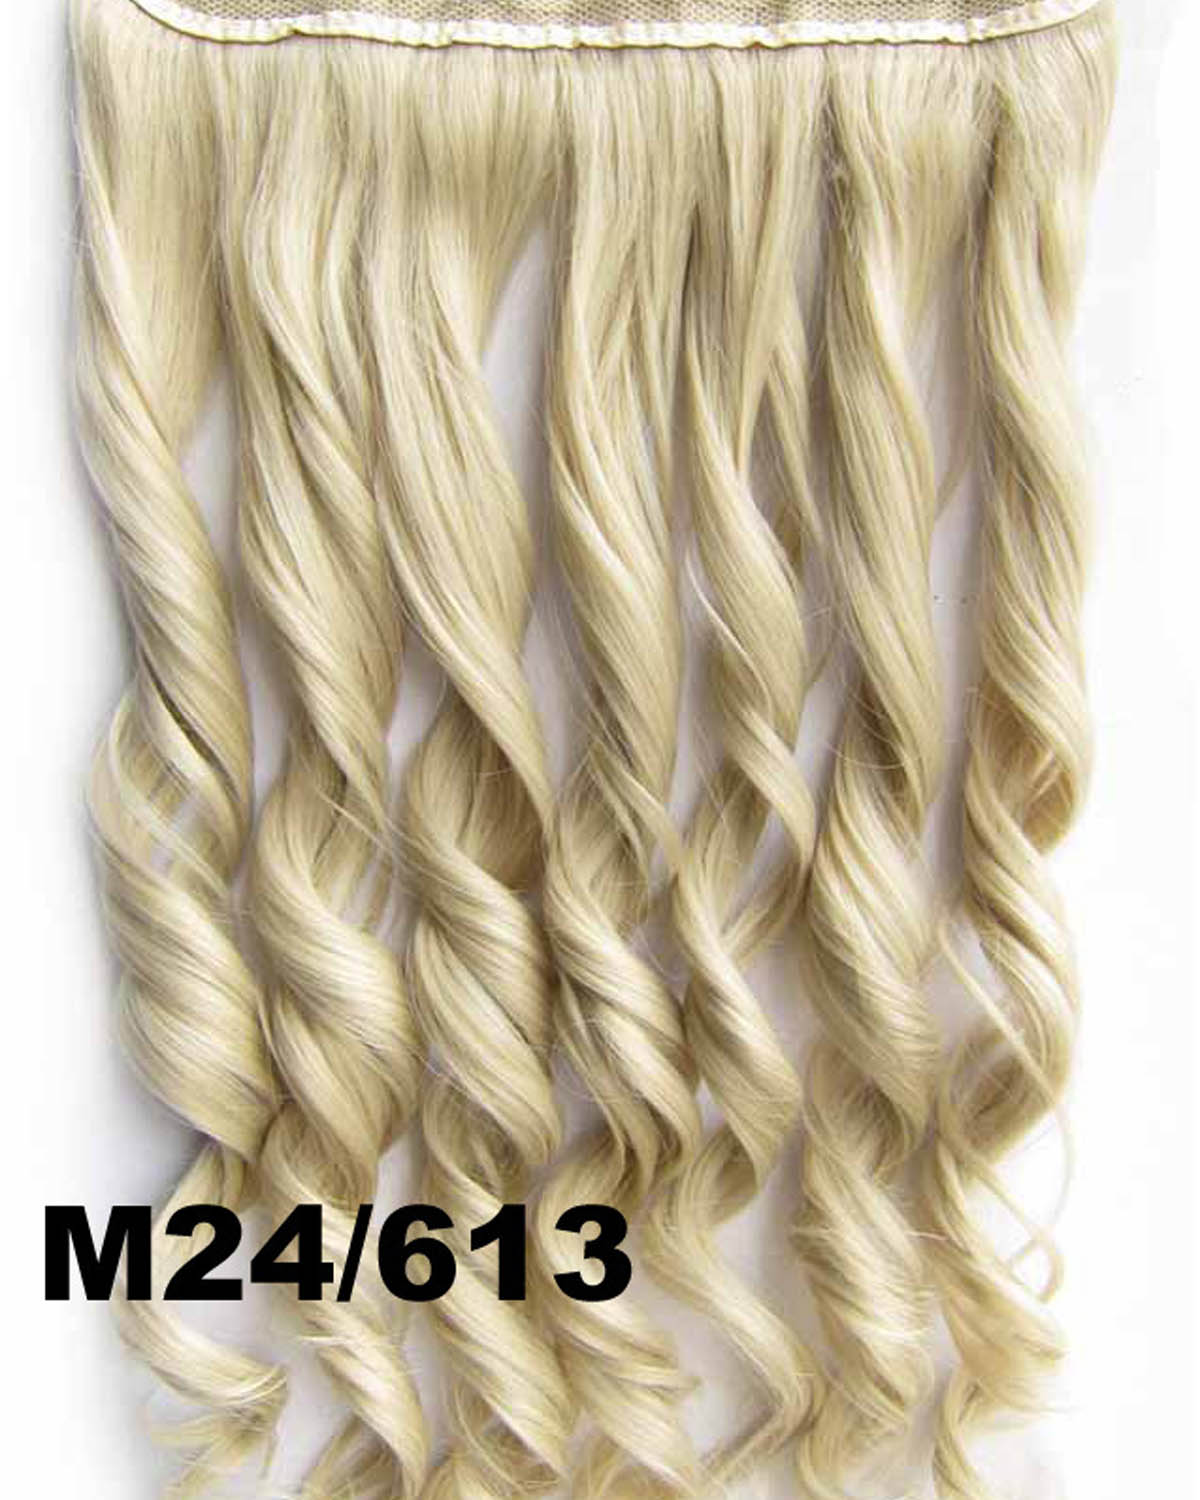 24 Inch Lady Fine Body Wave Curly Long One Piece 5 Clips Clip in Synthetic Hair Extension  M24/613